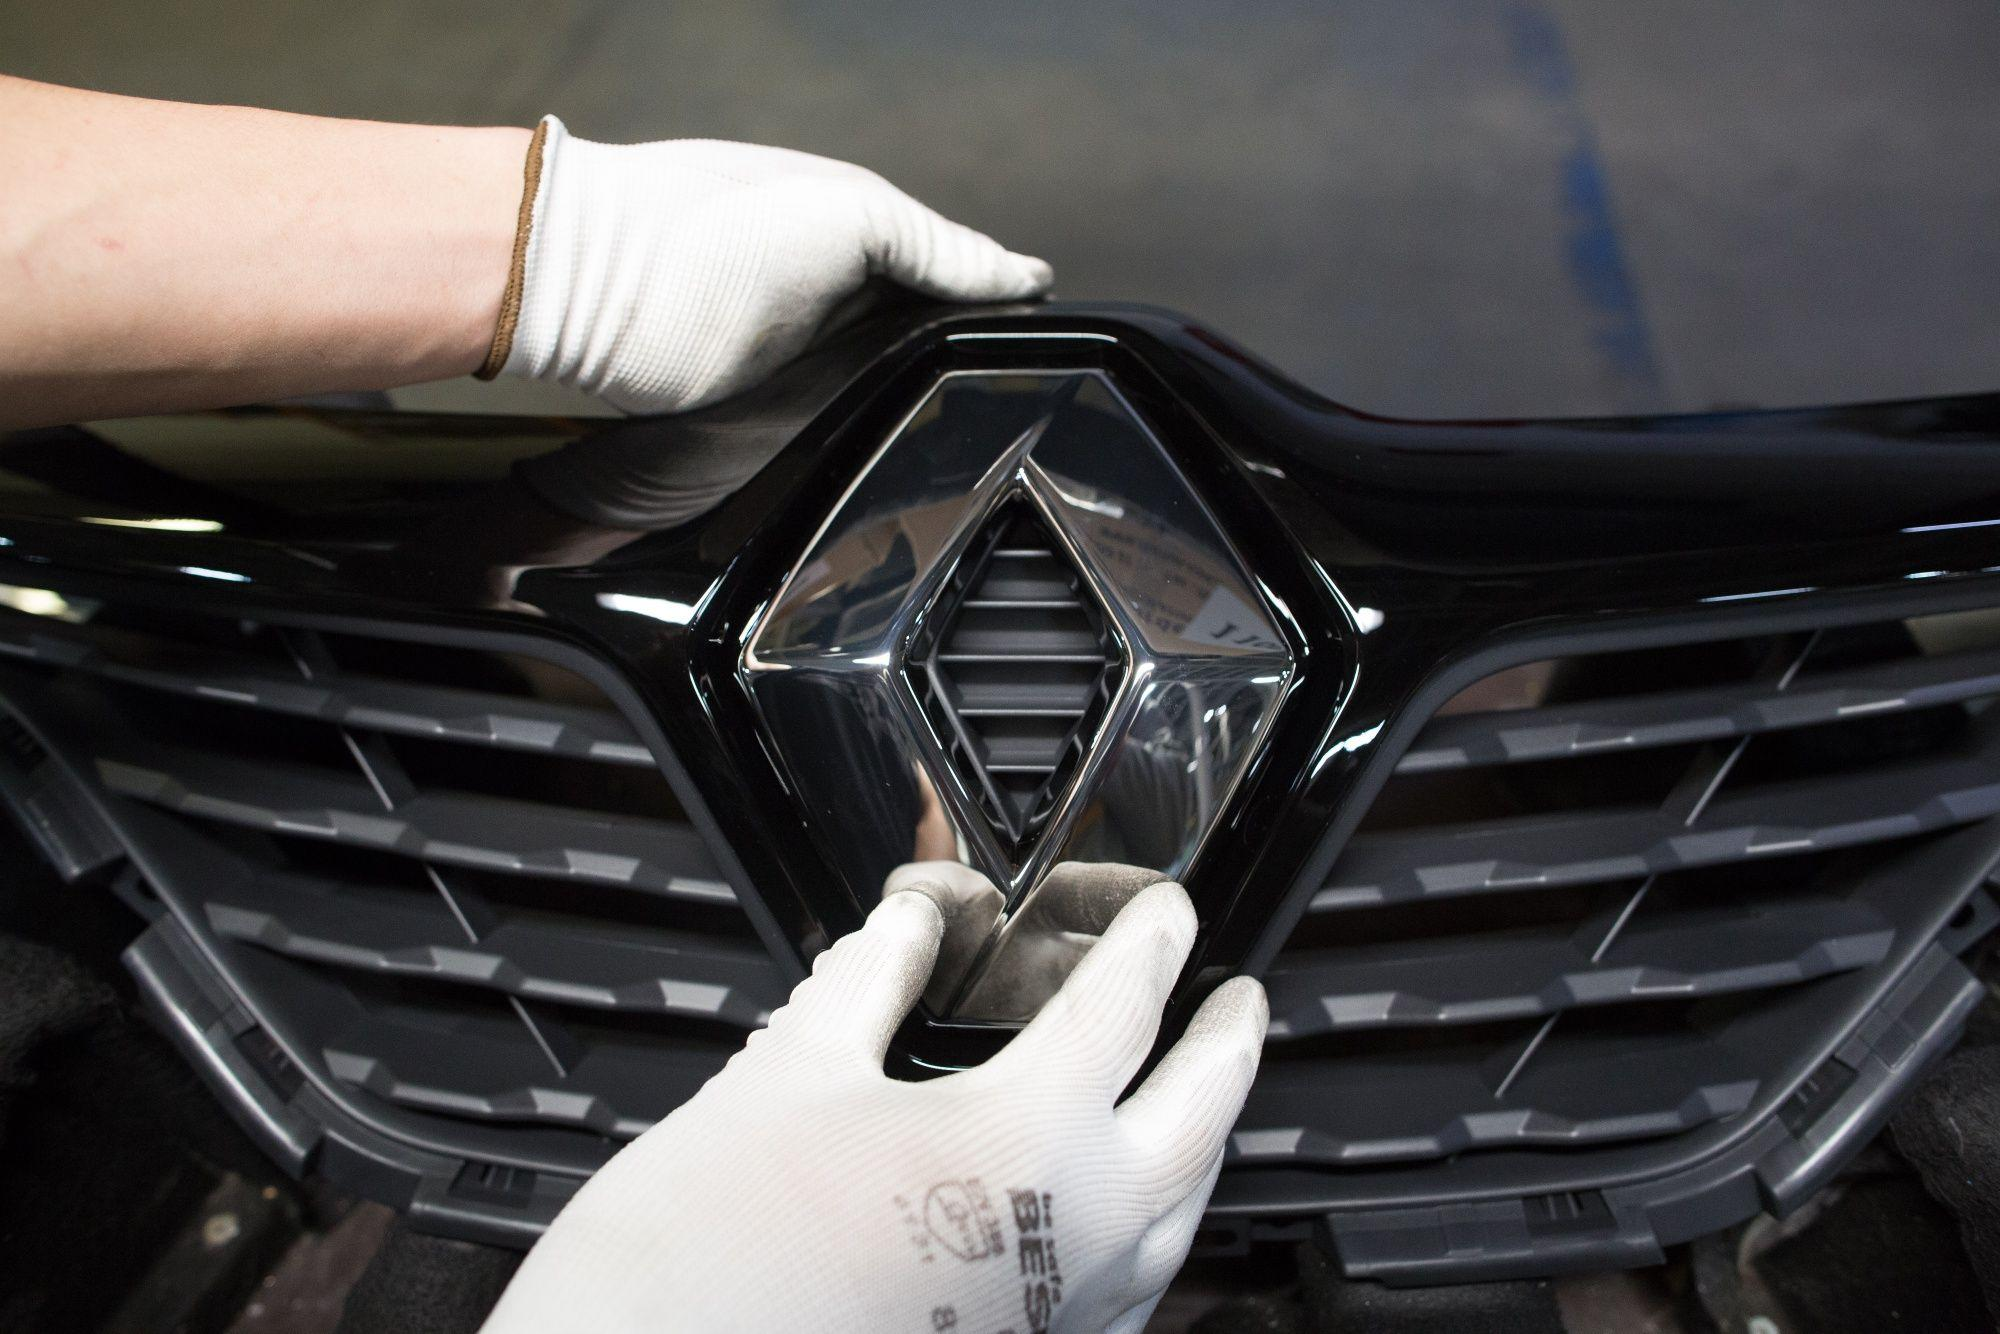 Renault's Troubled Ties to Nissan Are Hurting the Bottom Line